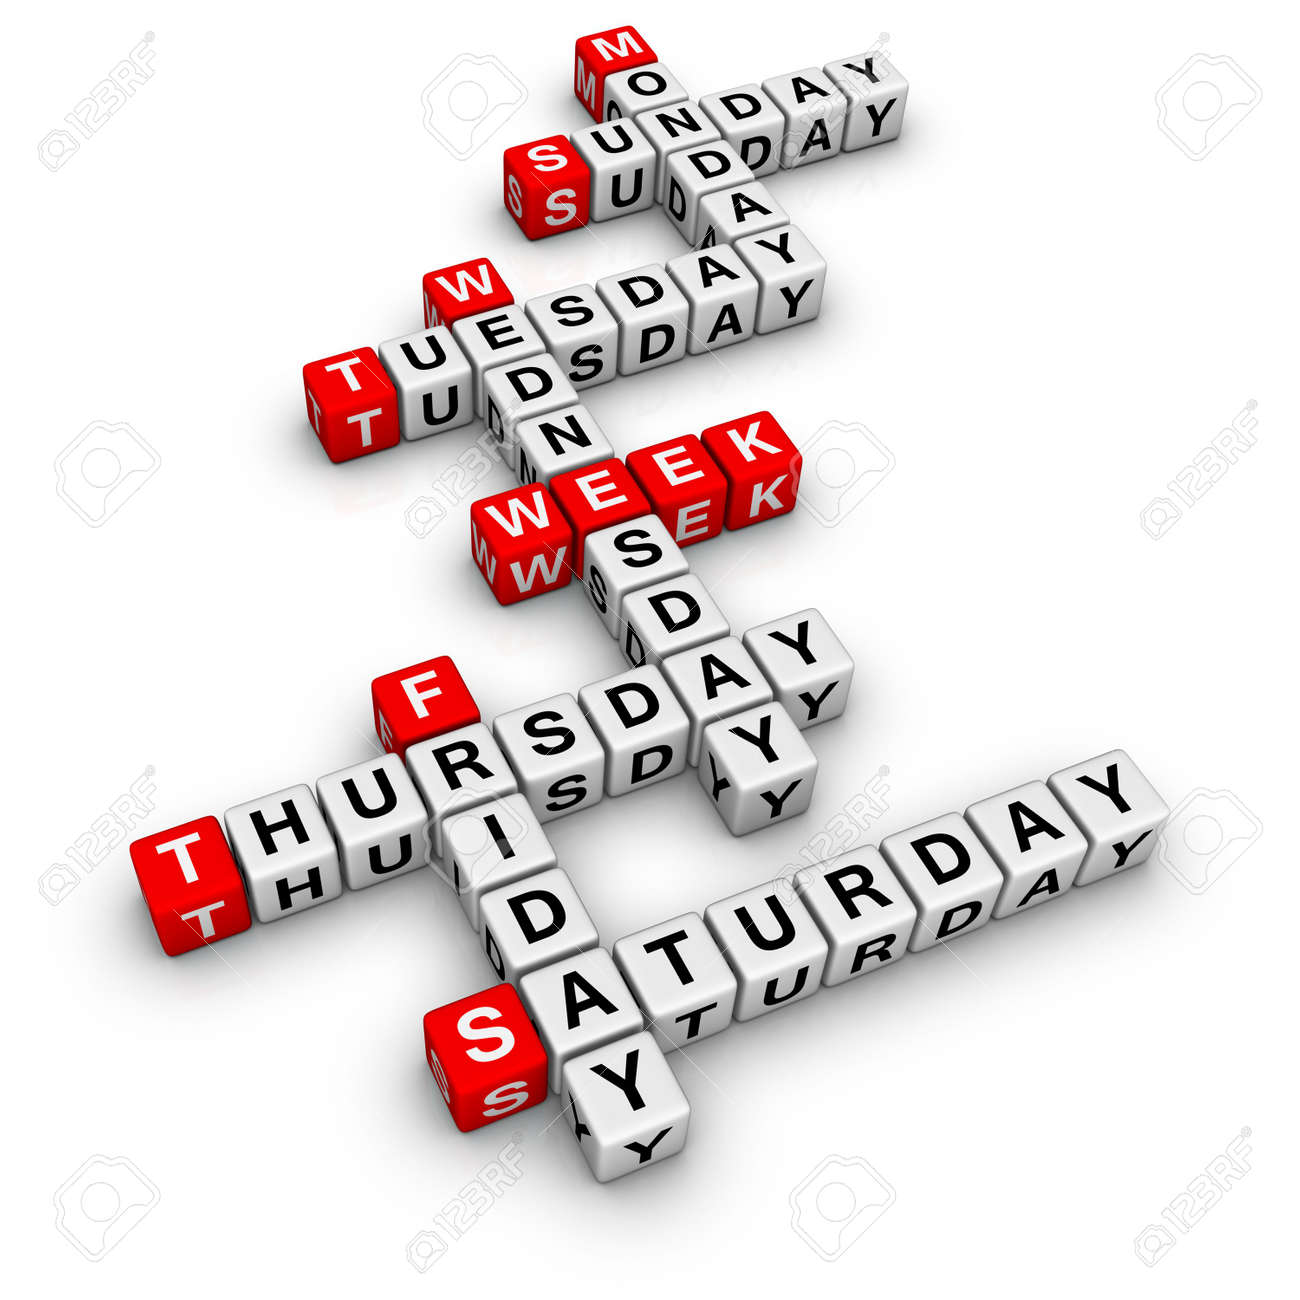 weekdays (frome crossword series) Stock Photo - 6585260